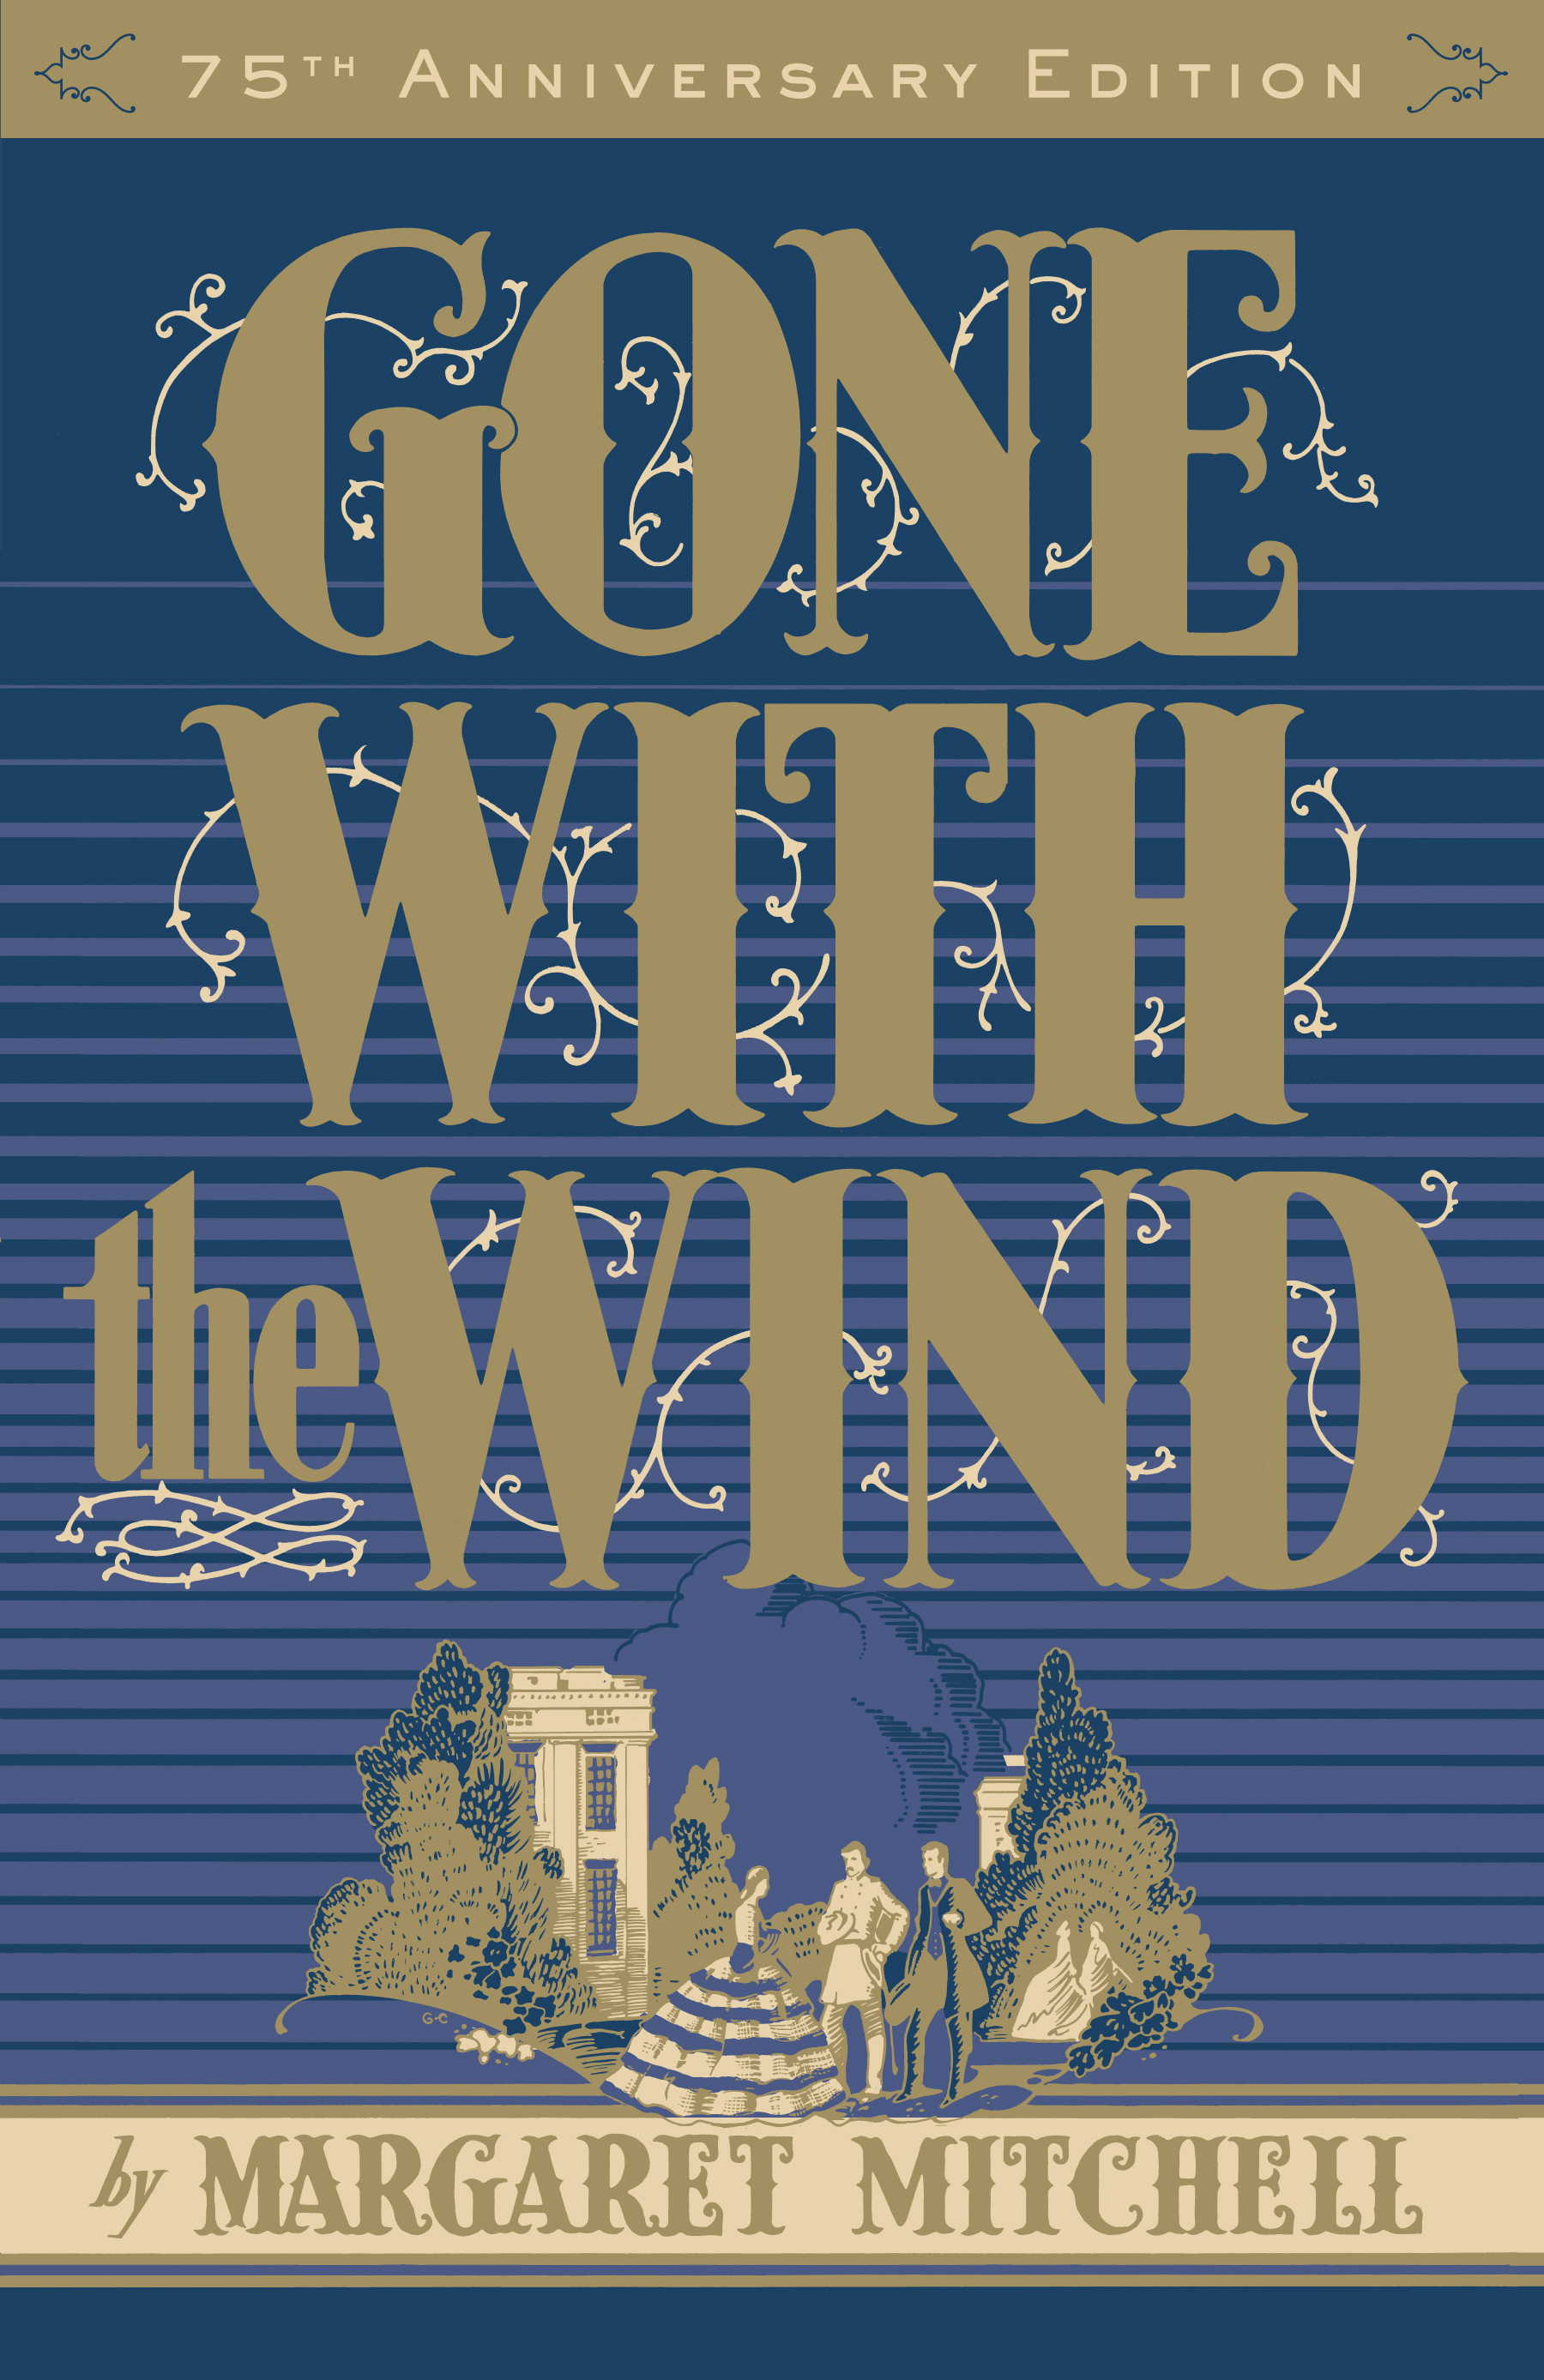 gone with the wind by margaret Home sparknotes literature study guides gone with the wind gone with the wind margaret mitchell table of contents plot overview summary & analysis part one: chapters i-iv chapters v-vii part two: chapters viii-xi chapters xii.